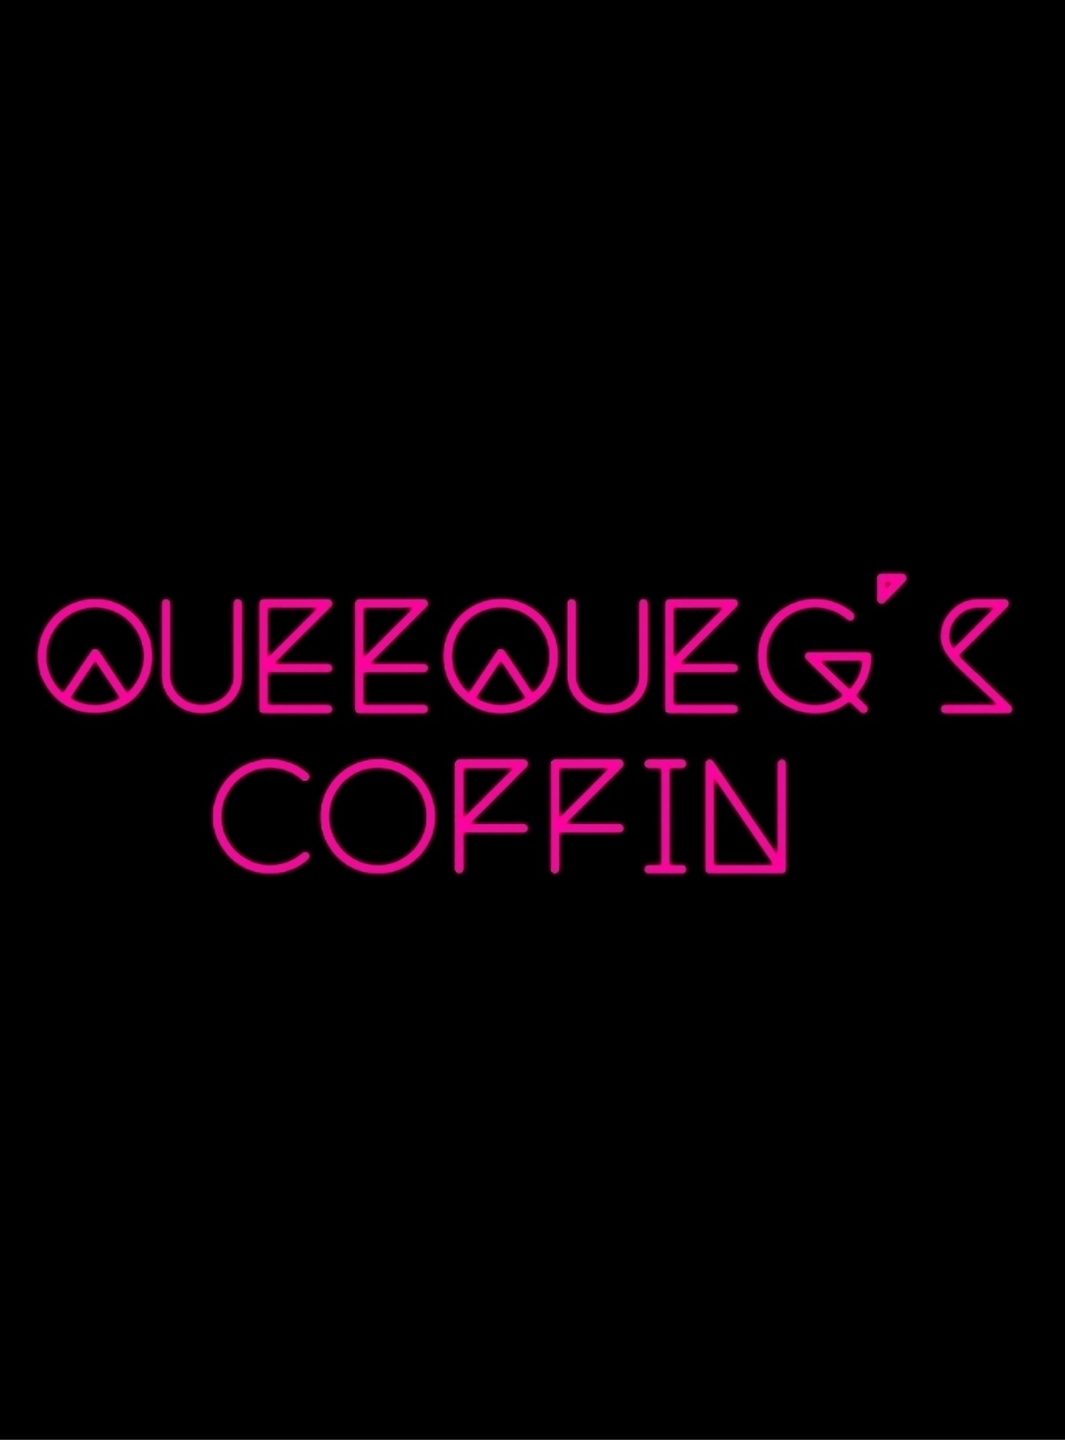 Queequeg's Coffin (@queequegscoffin) Cover Image